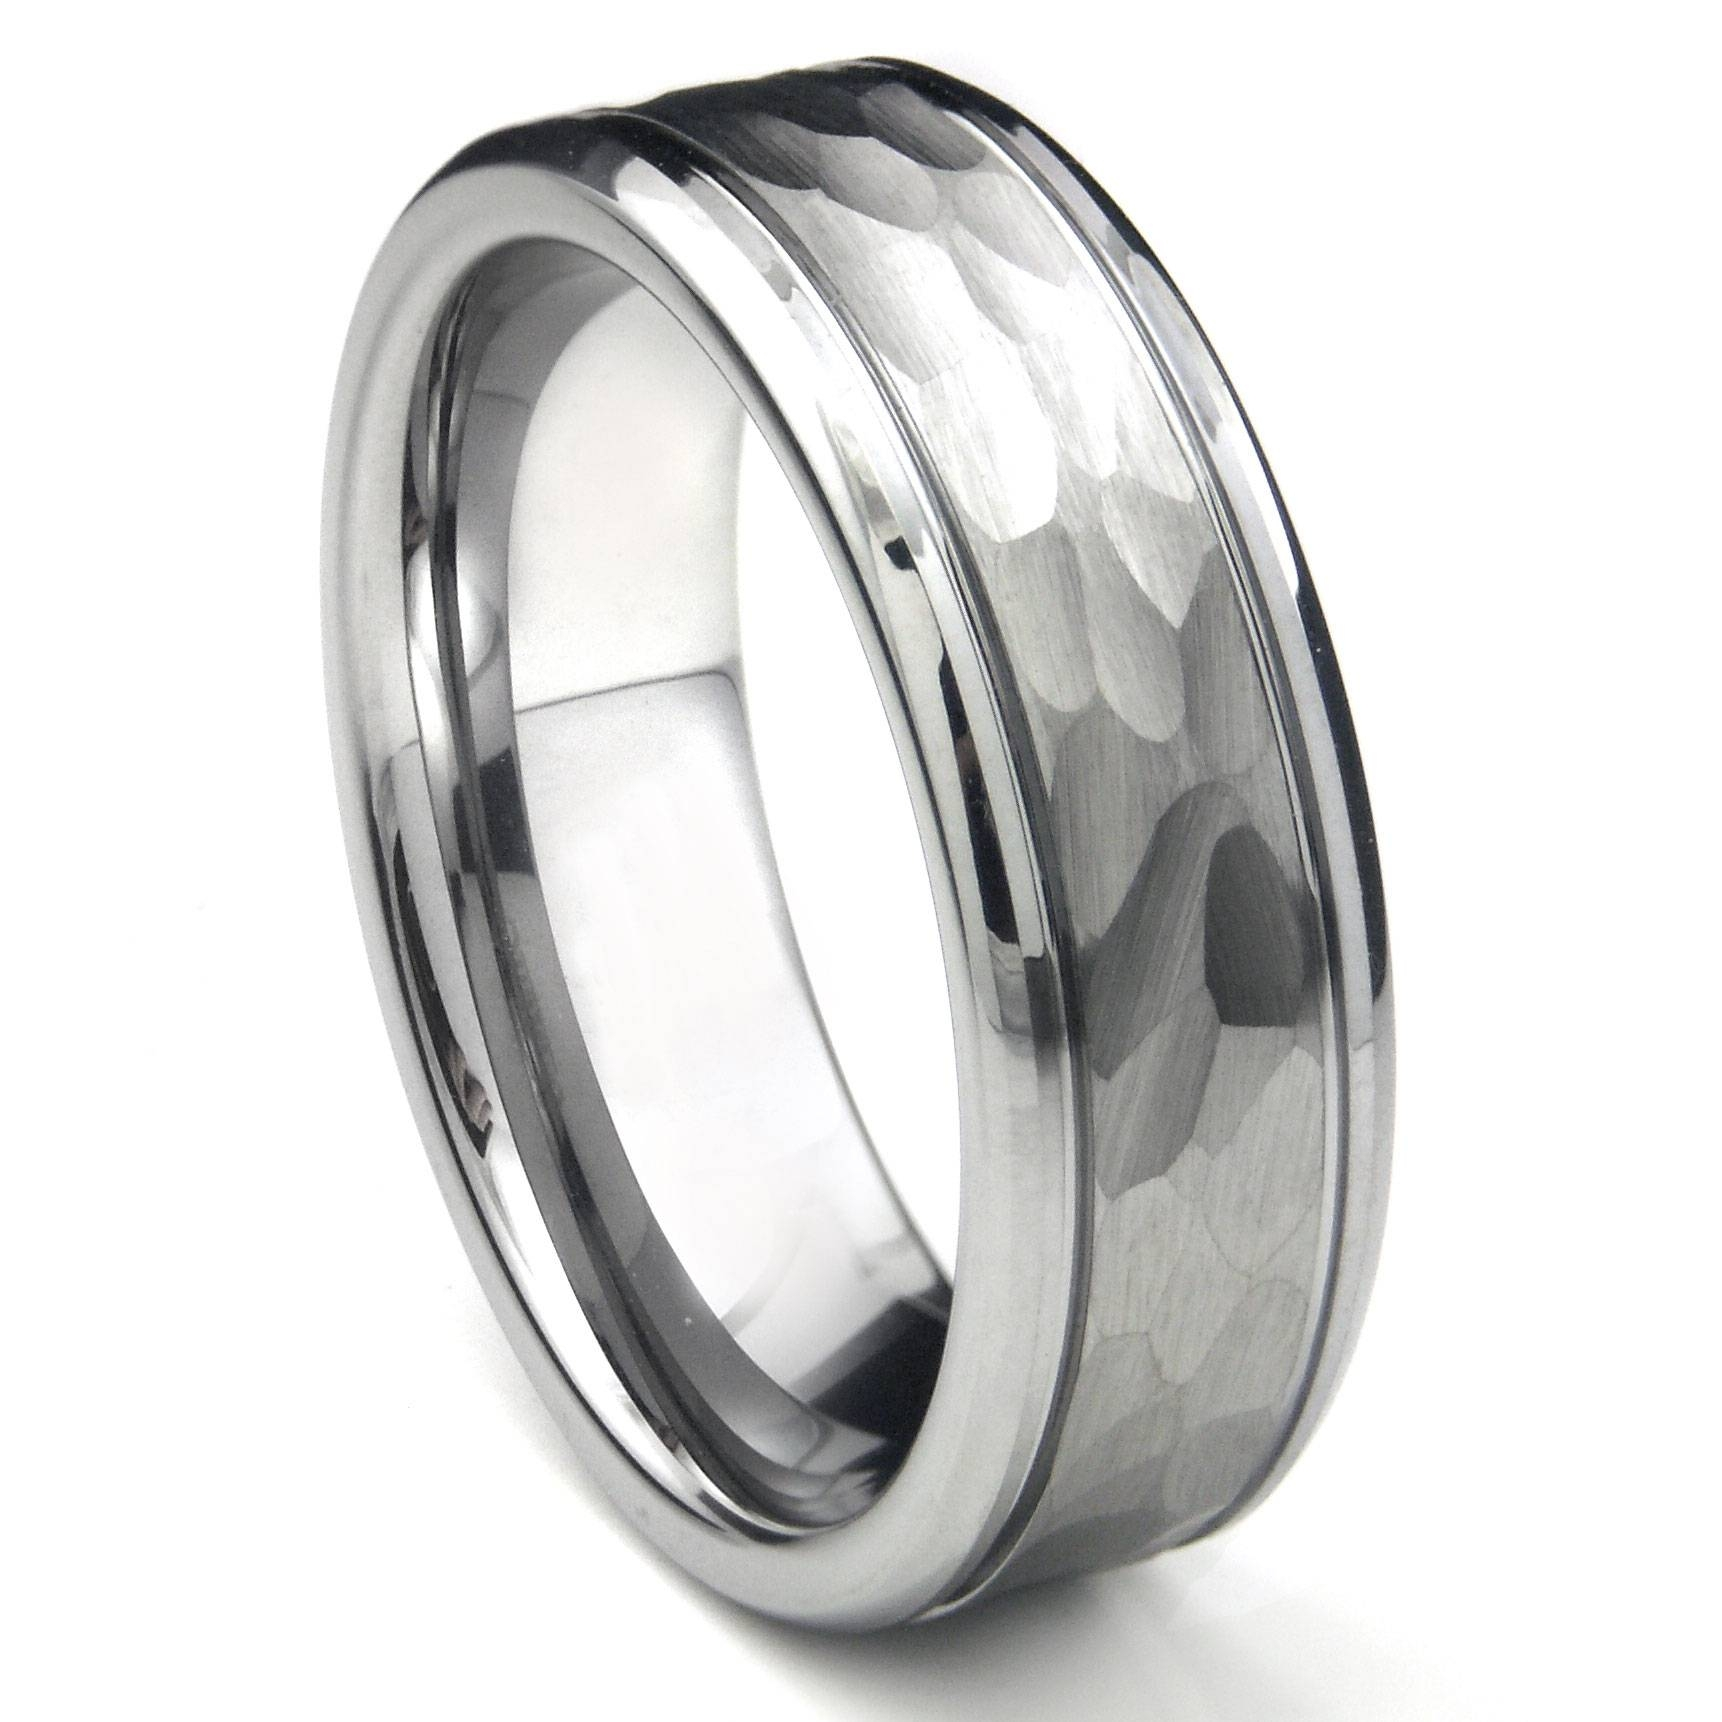 Tungsten Carbide Hammer Finish Wedding Band Ring /w Grooves In Dark Metal Mens Wedding Bands (View 13 of 15)